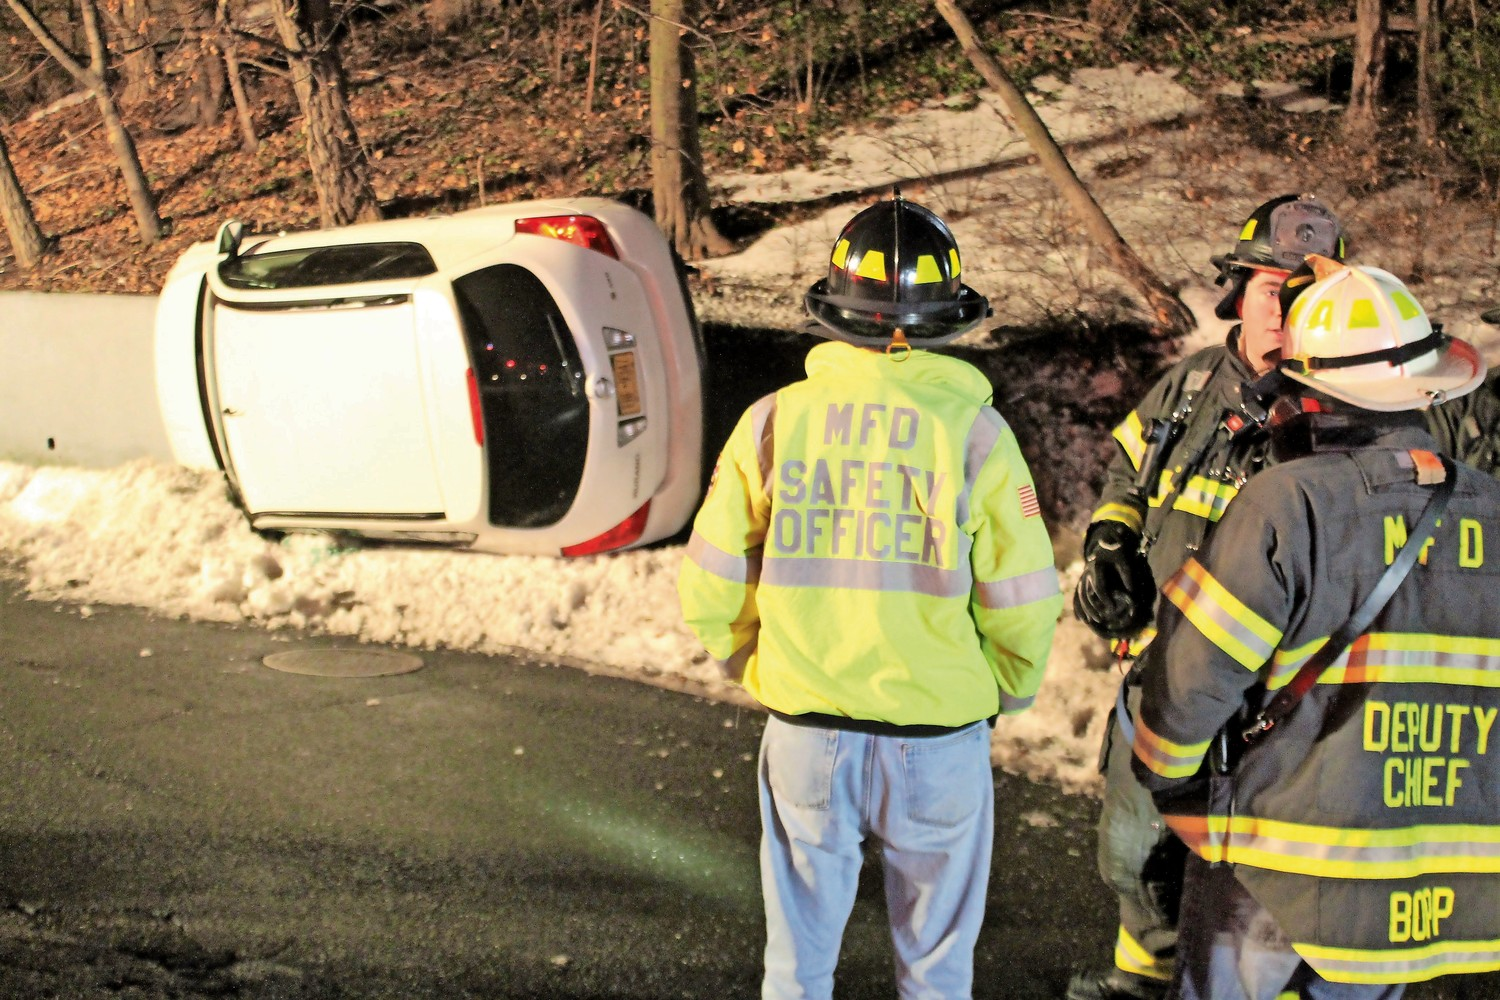 Firefighters from the Malverne Fire Department responded to an overturned vehicle on Dogwood Avenue in West Hempstead last Thursday.